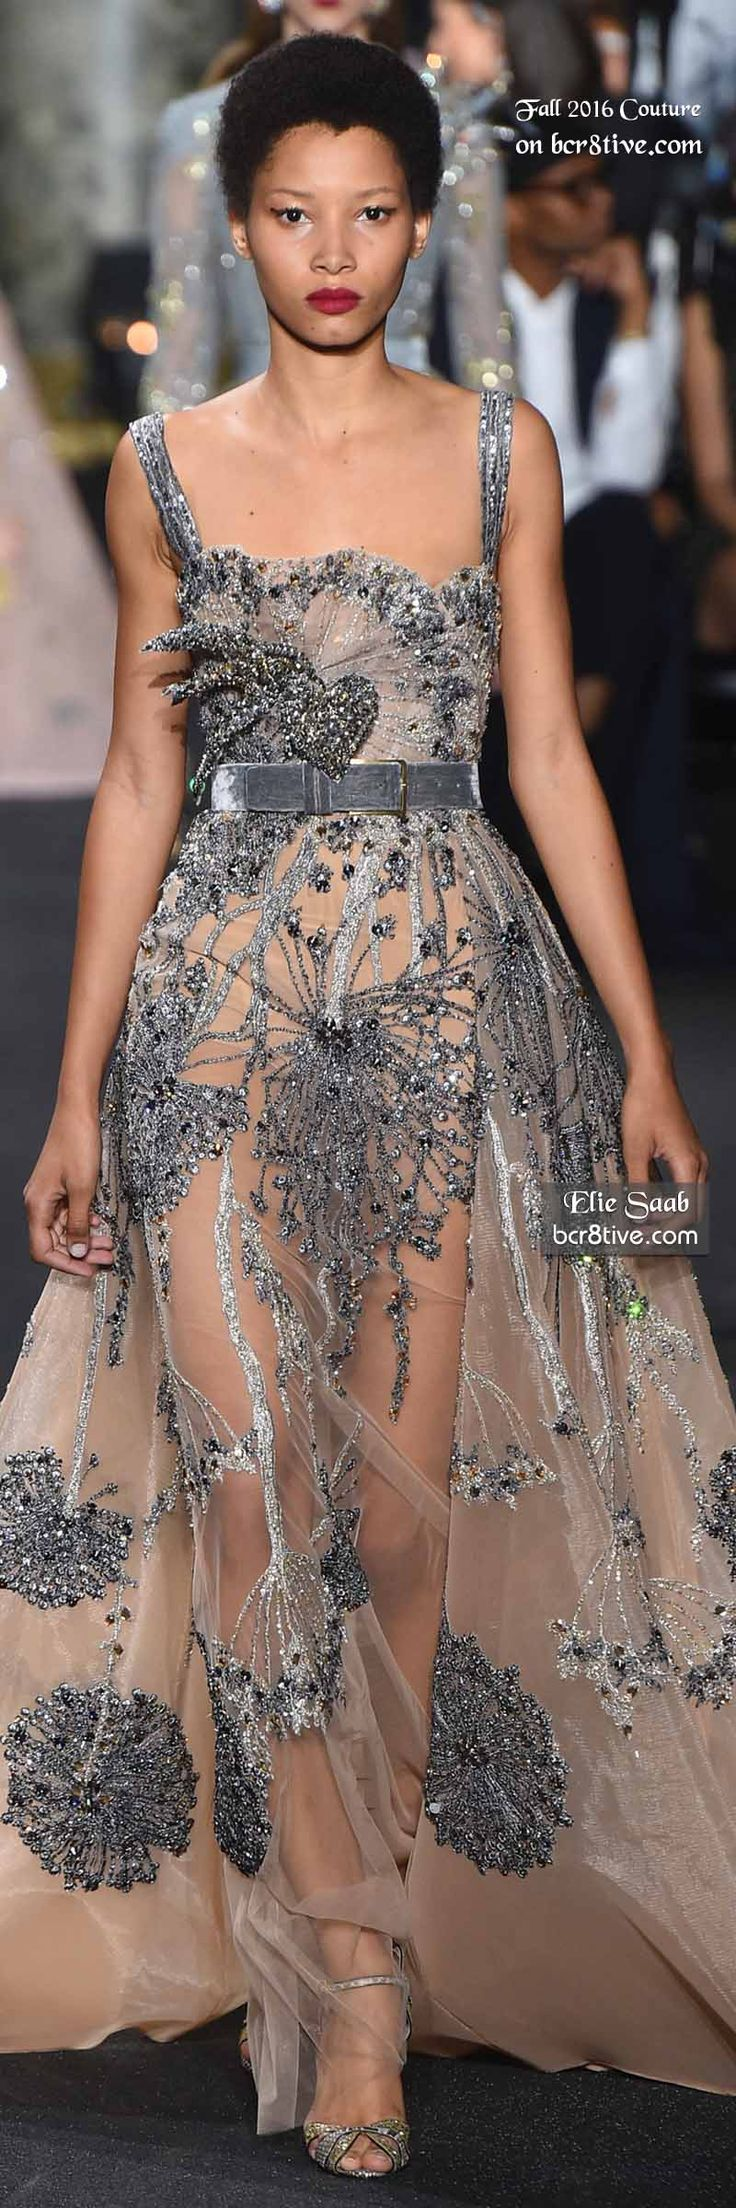 The Best Fall 2016 Haute Couture Fashion